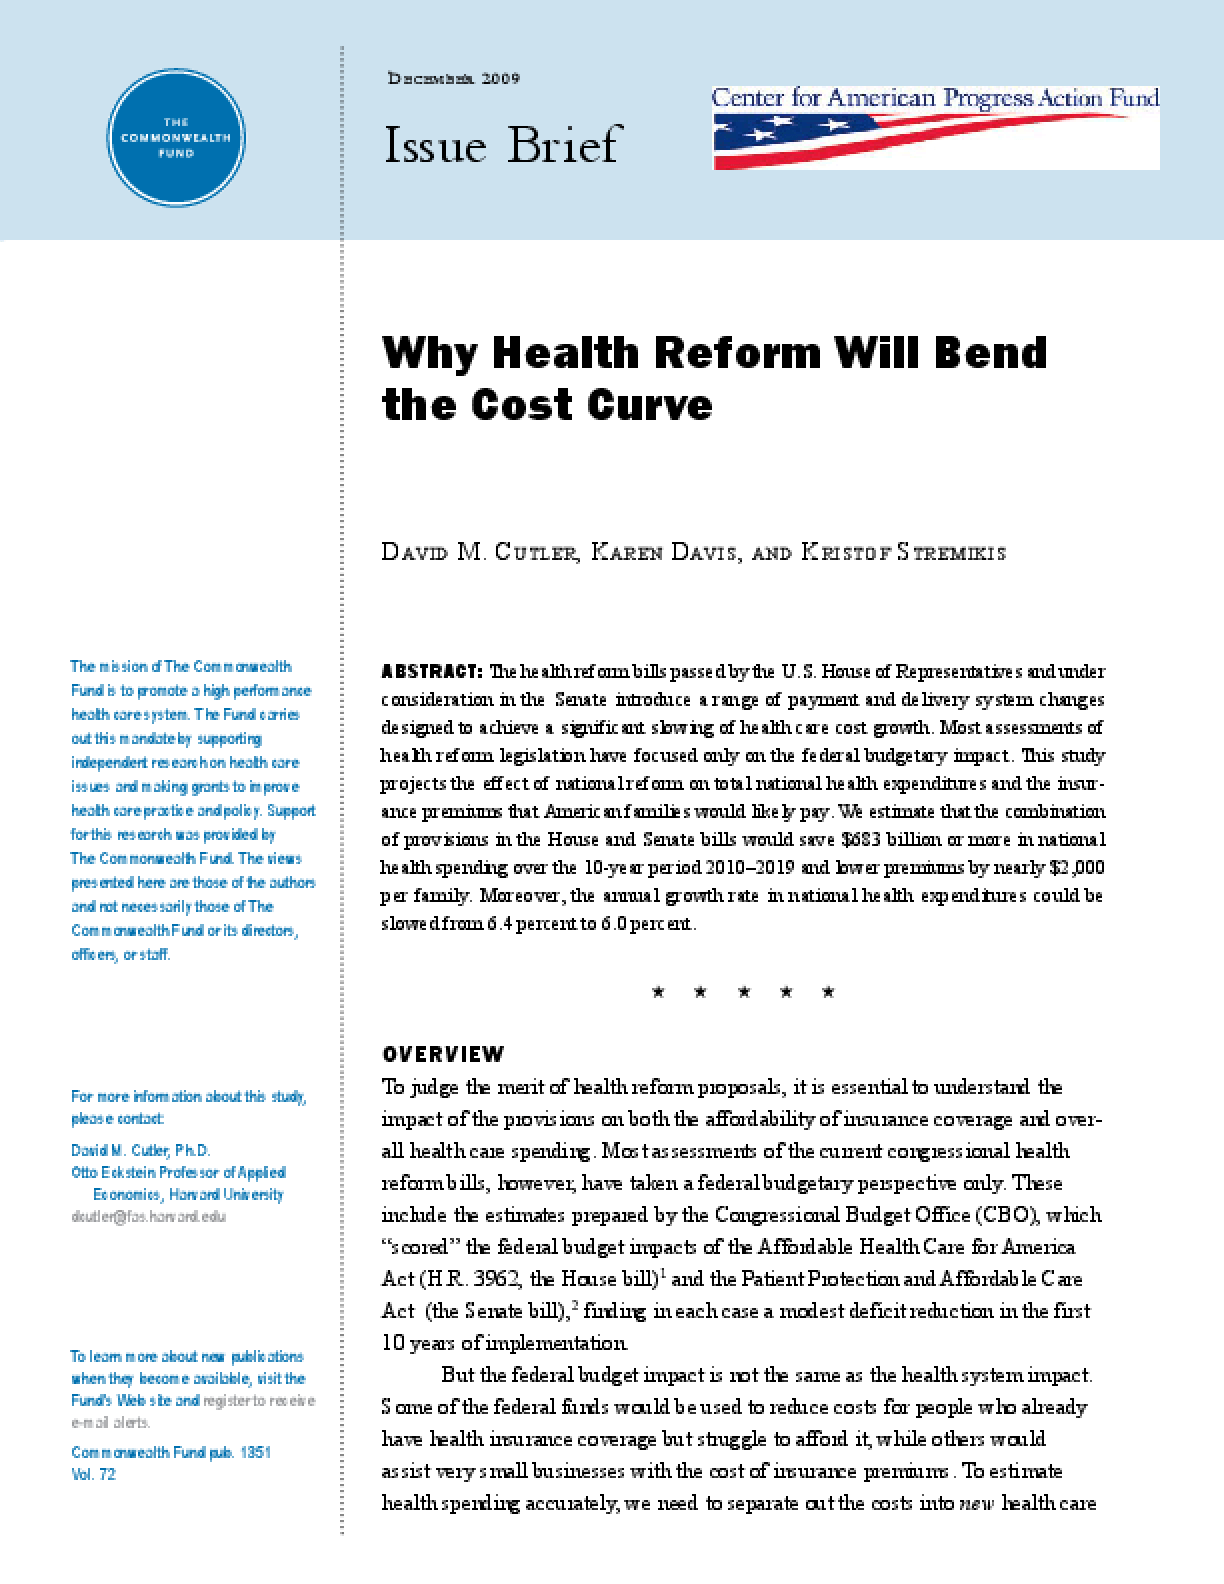 Why Health Reform Will Bend the Cost Curve